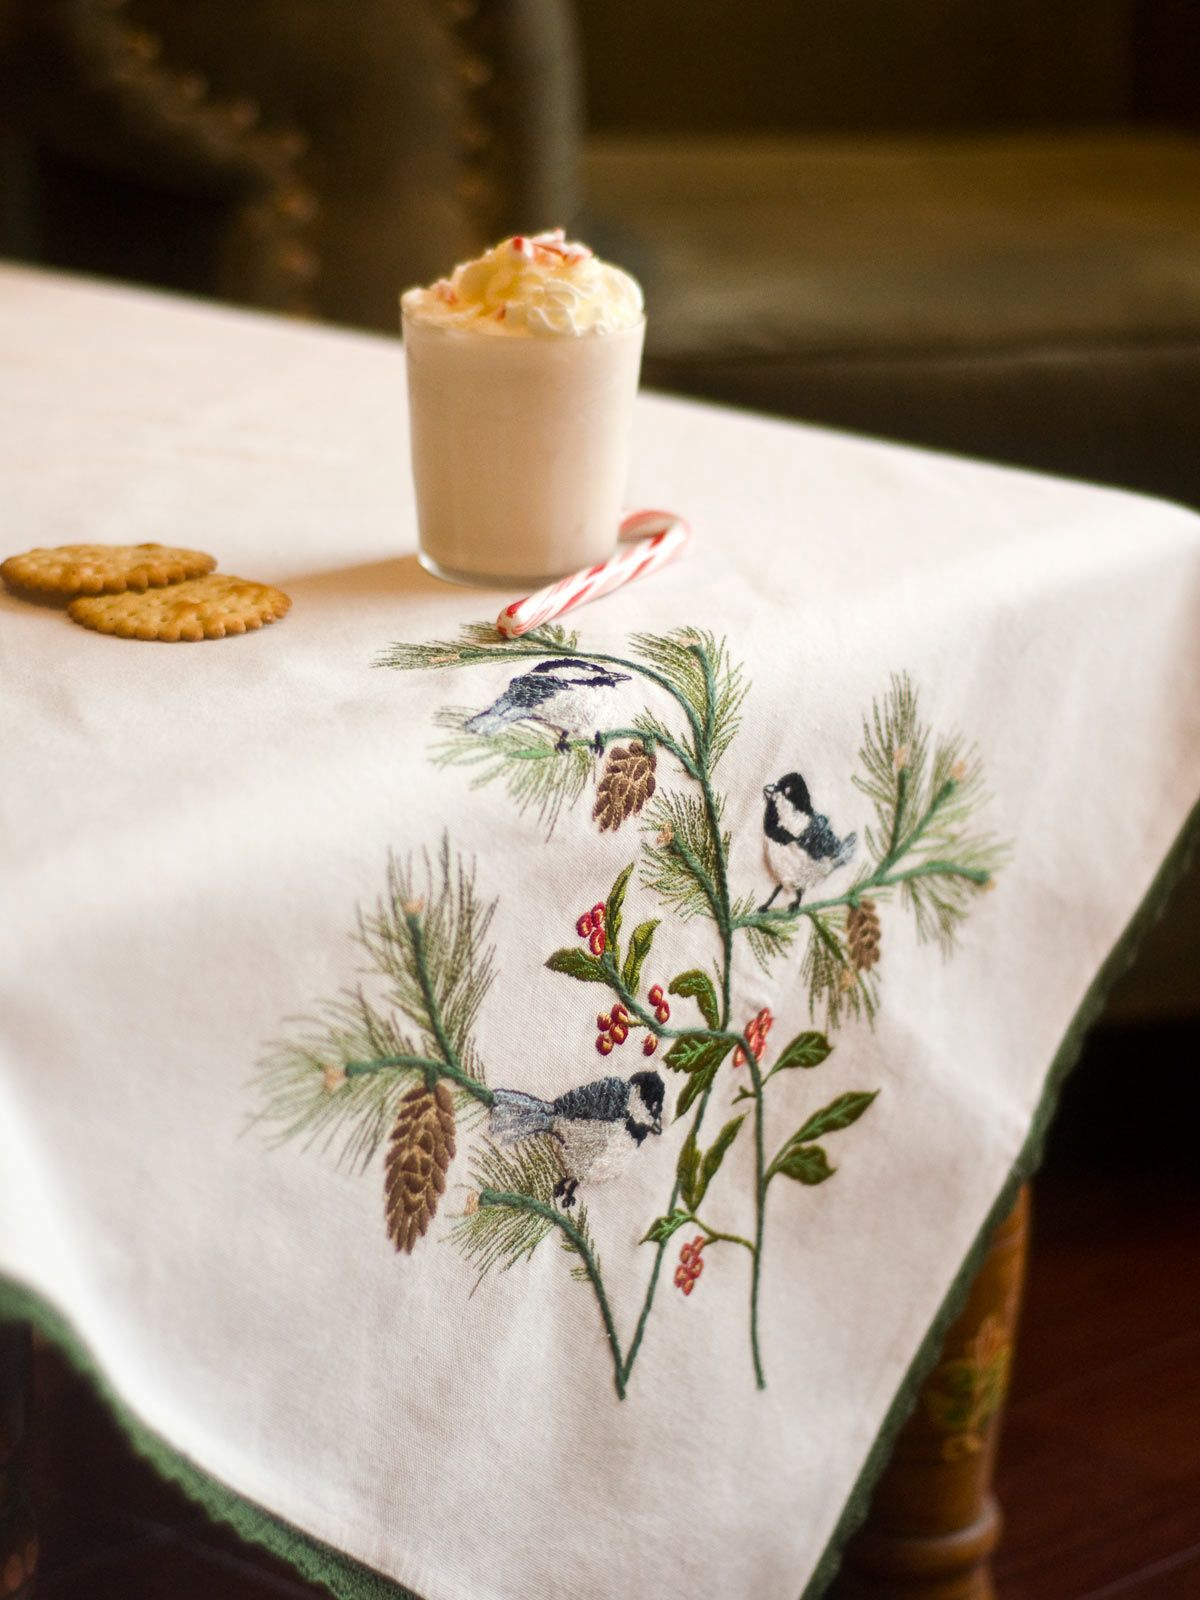 Chickadee Embroidery Tablecloth | Table Linens U0026 Kitchen, Tablecloths  :Beautiful Designs By April Cornell